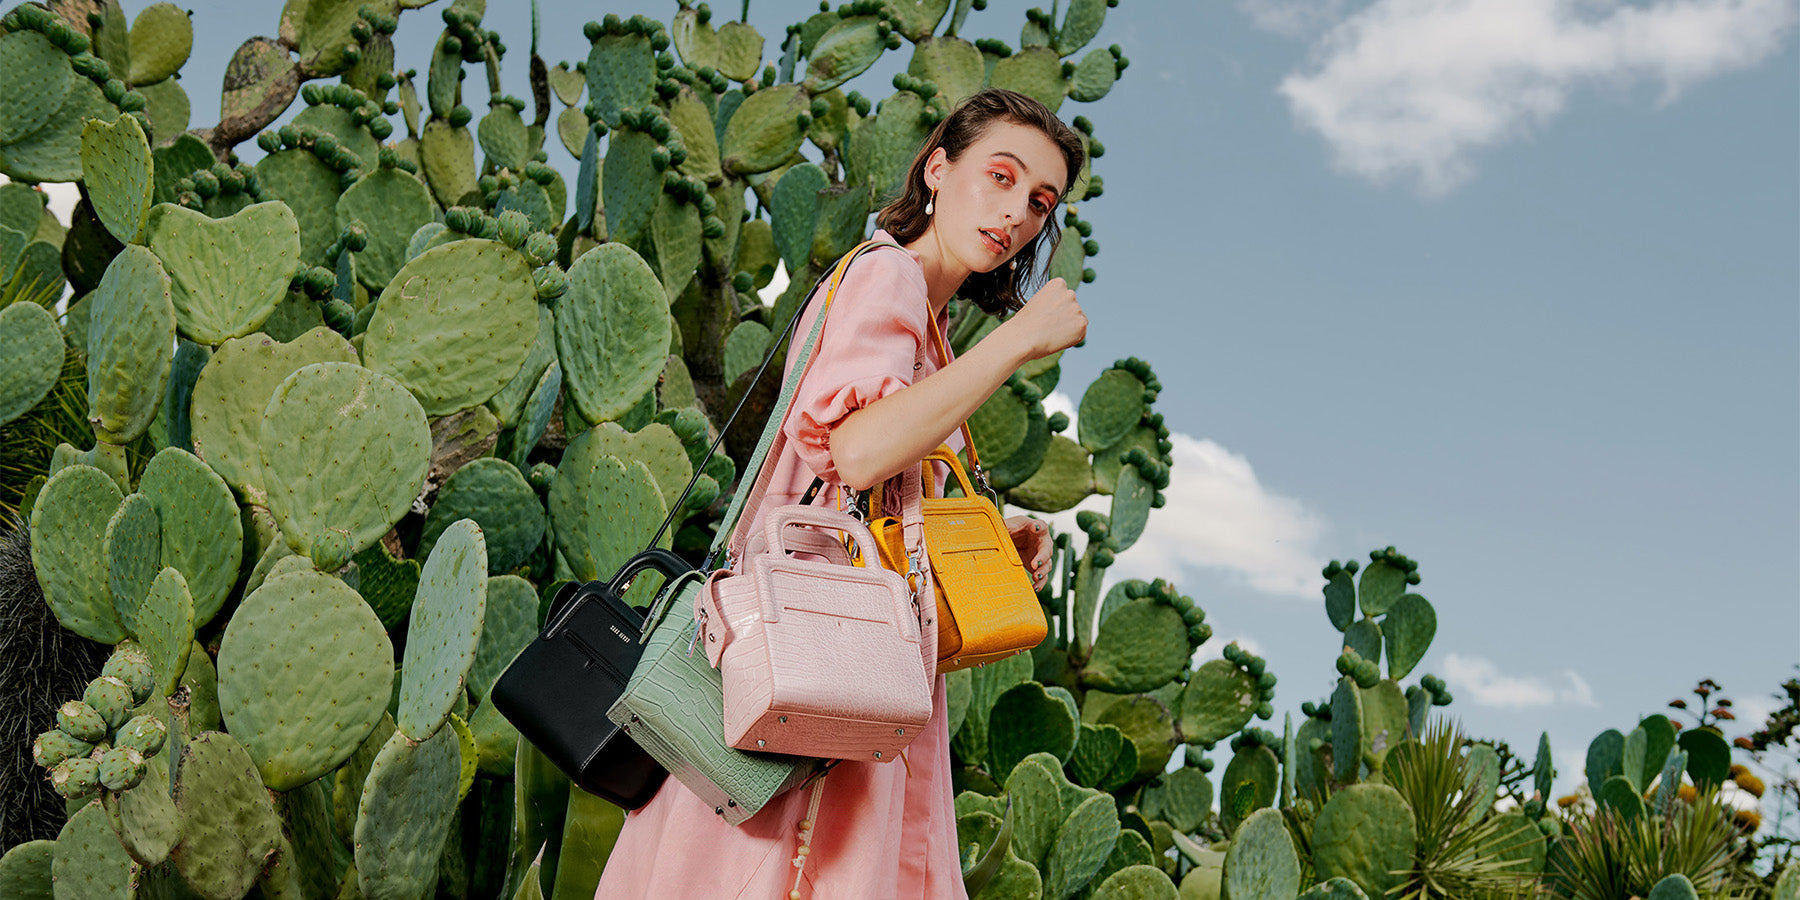 Juliette wearing a pink dress in front of a cactus backdrop, carrying four Long Lunch Totes in Noir, Sage, Ballerina Pink + Mustard.